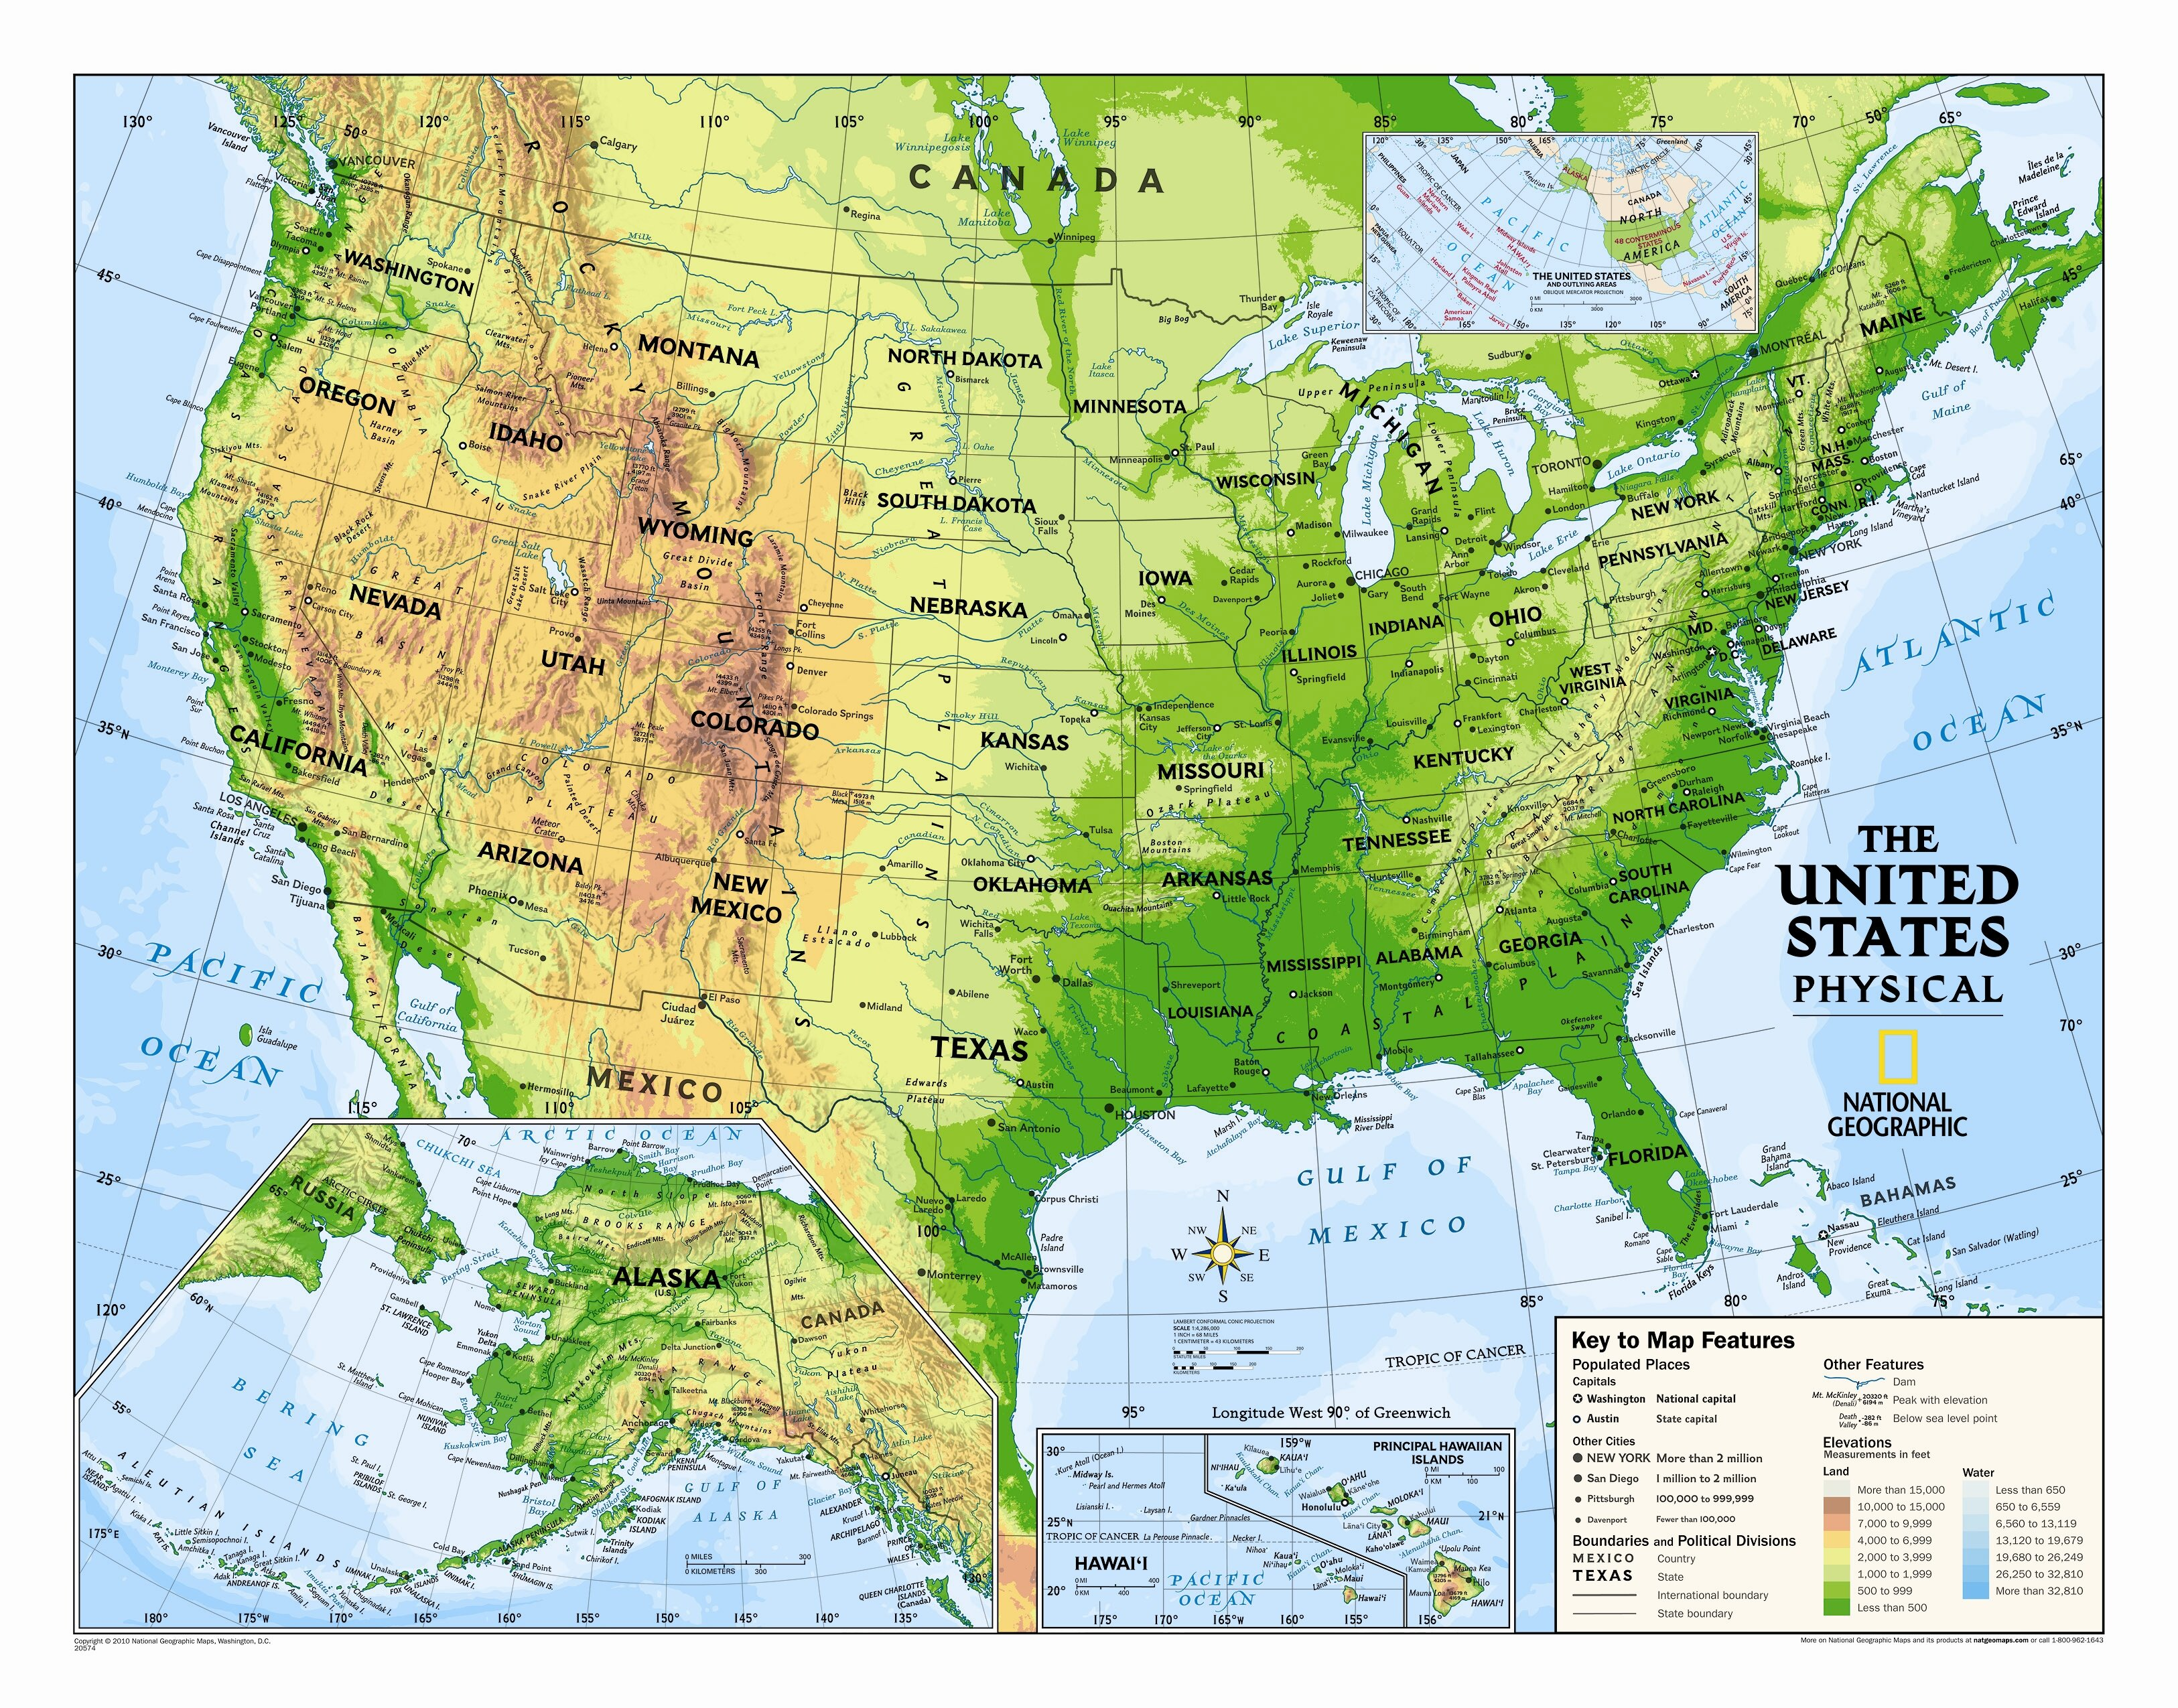 Kids Physical USA Wall Map (Graded 4-12) on palace map, statue map, desk map, plant map, go to the map, green map, inverted map, plate map, atlas map, trench map, floor map, border map, step map, world map, englewood map, home map, large map, glass map, glider map, magnetic map,